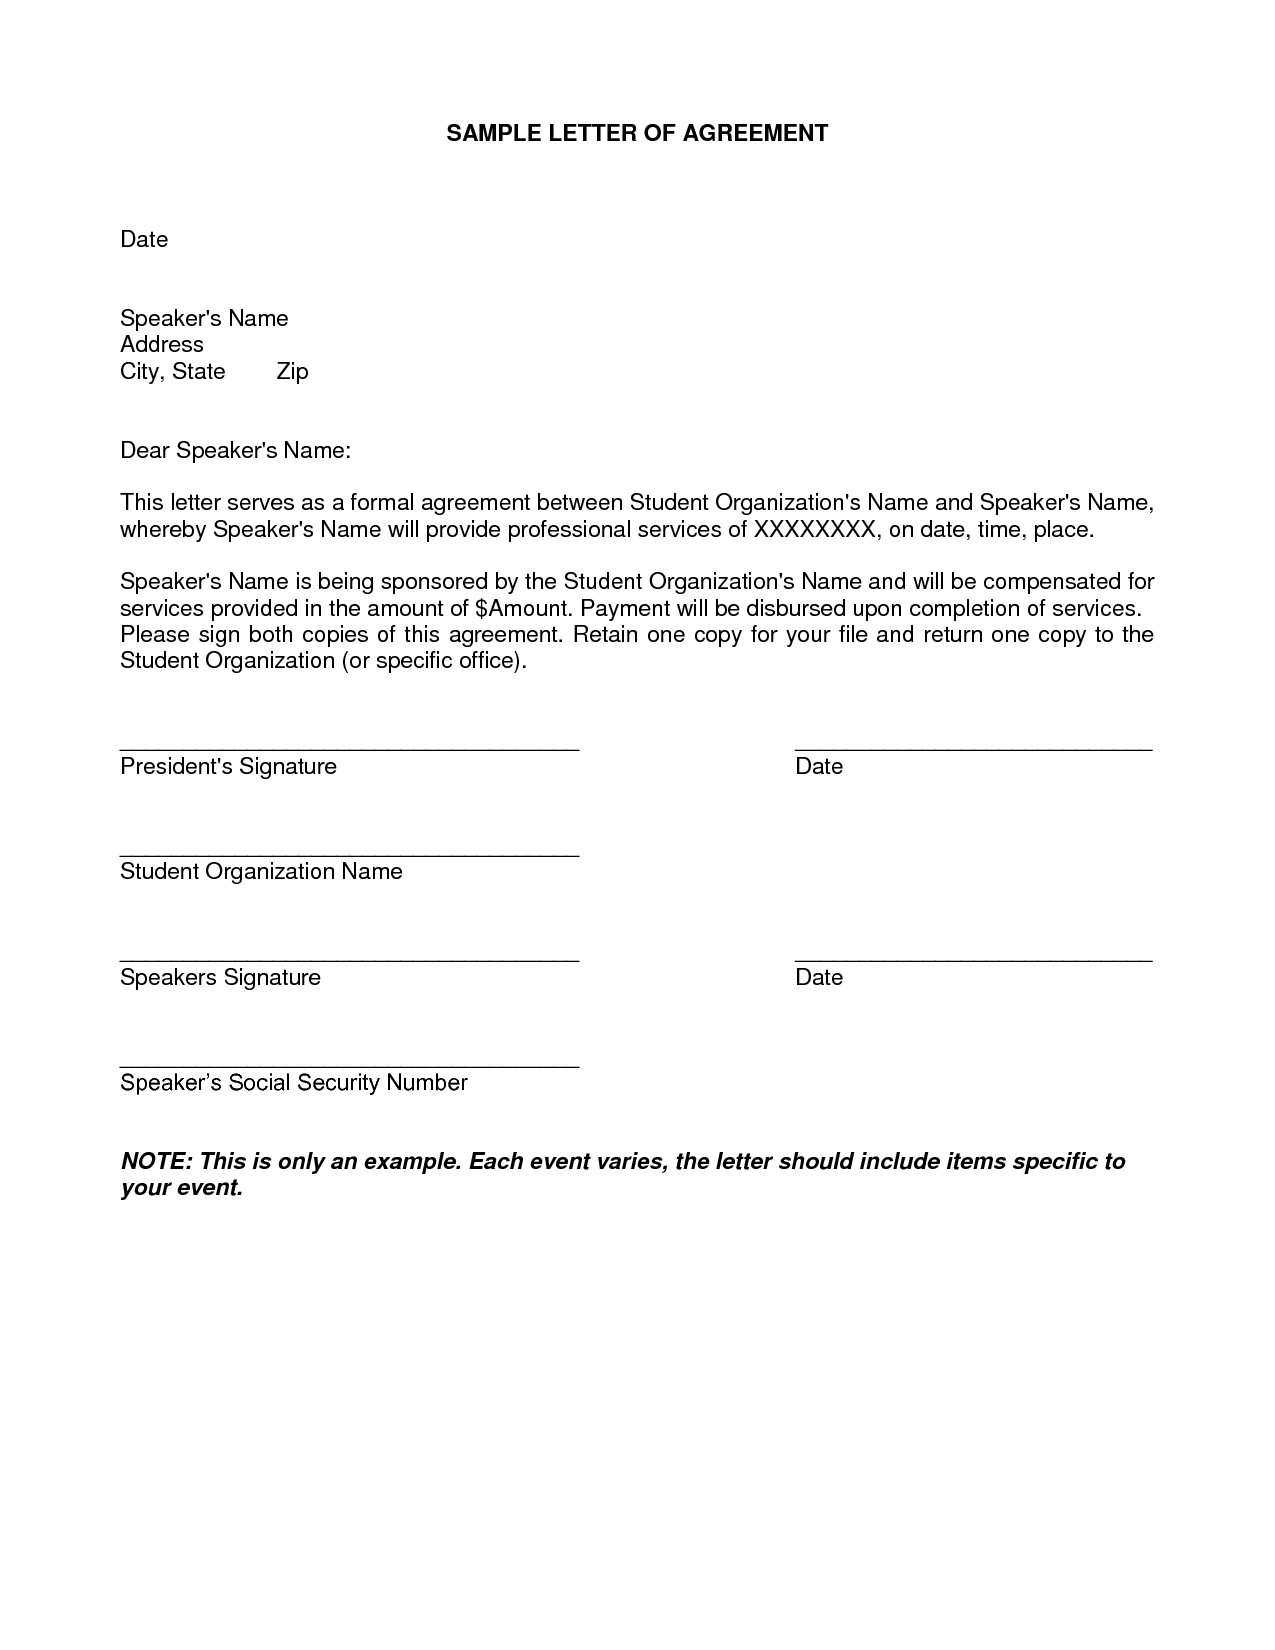 Letter Of Agreement Samples Template seeabruzzo letter of